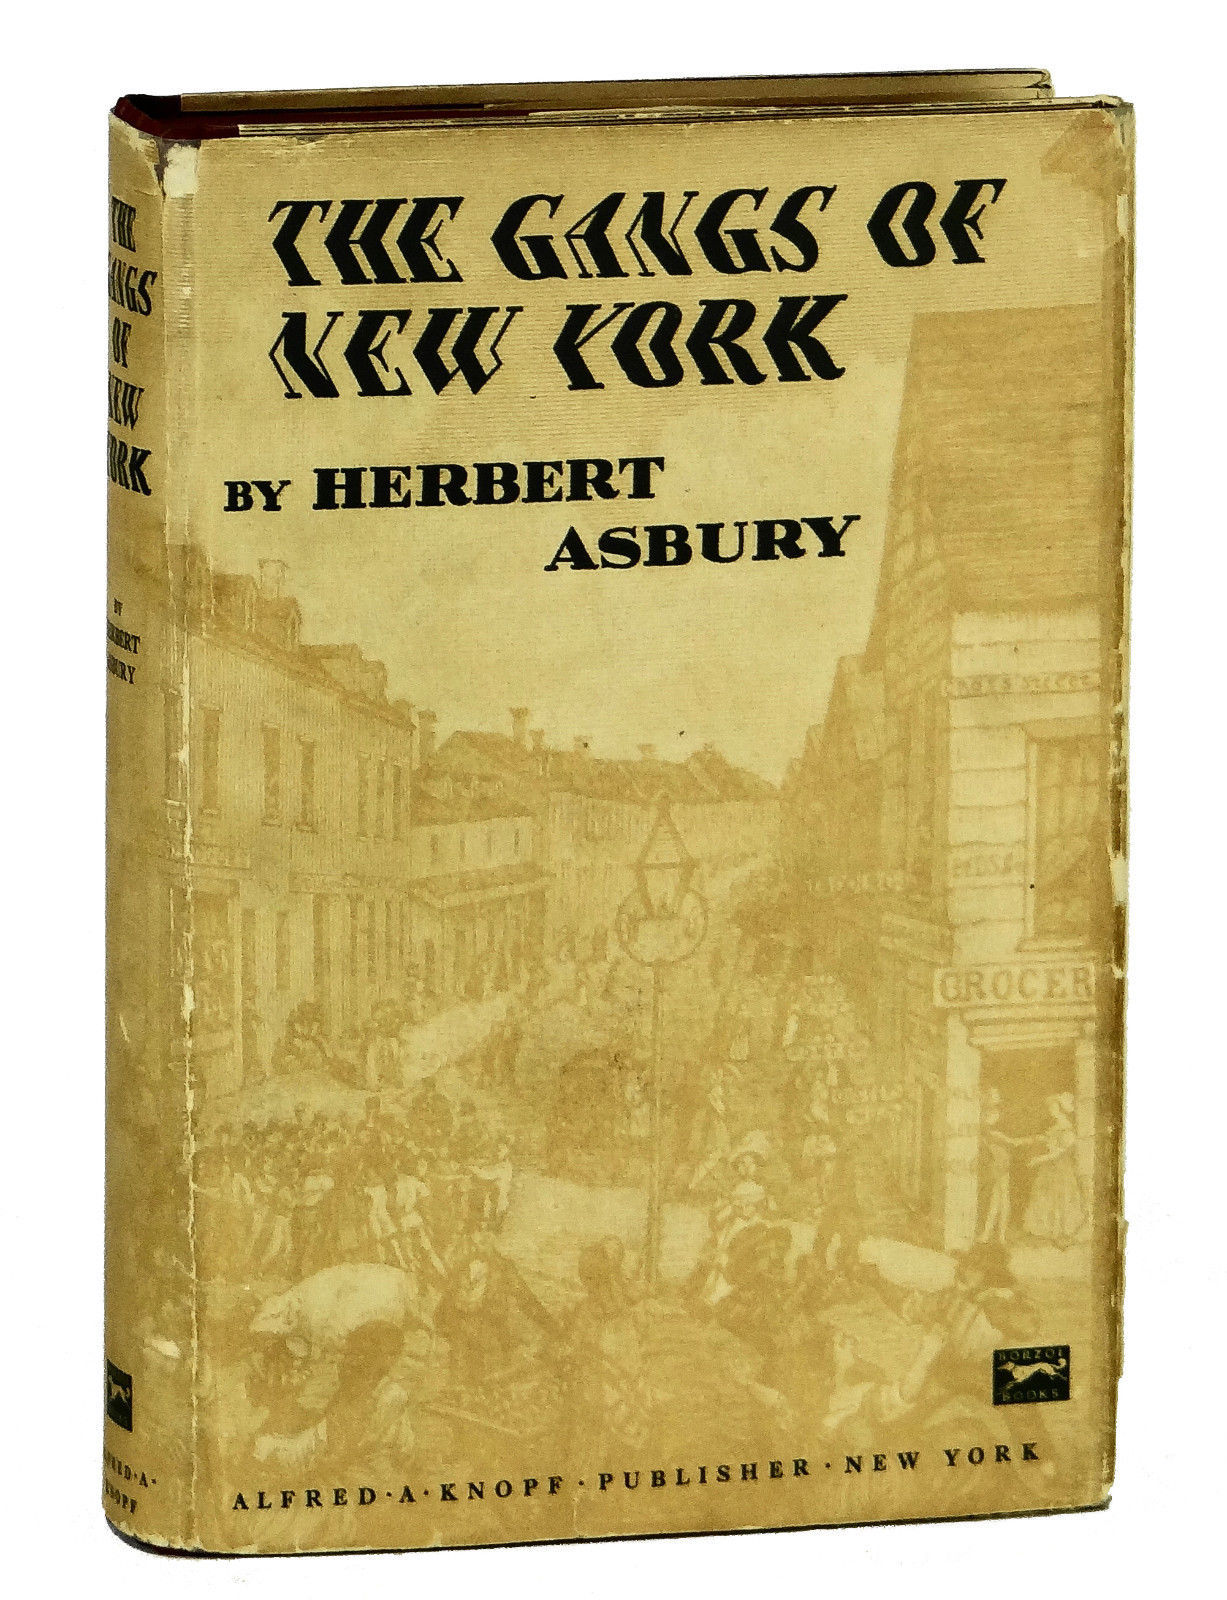 gangs of new york by herbert By herbert asbury herbert asbury pulled this book together from several official sources, including police records as well as unofficial ones such as the rough memories of criminals true to the title, the book is a history of crime both organized and not that permeated the dirty underbelly of new york city and its boroughs in the 19th and .